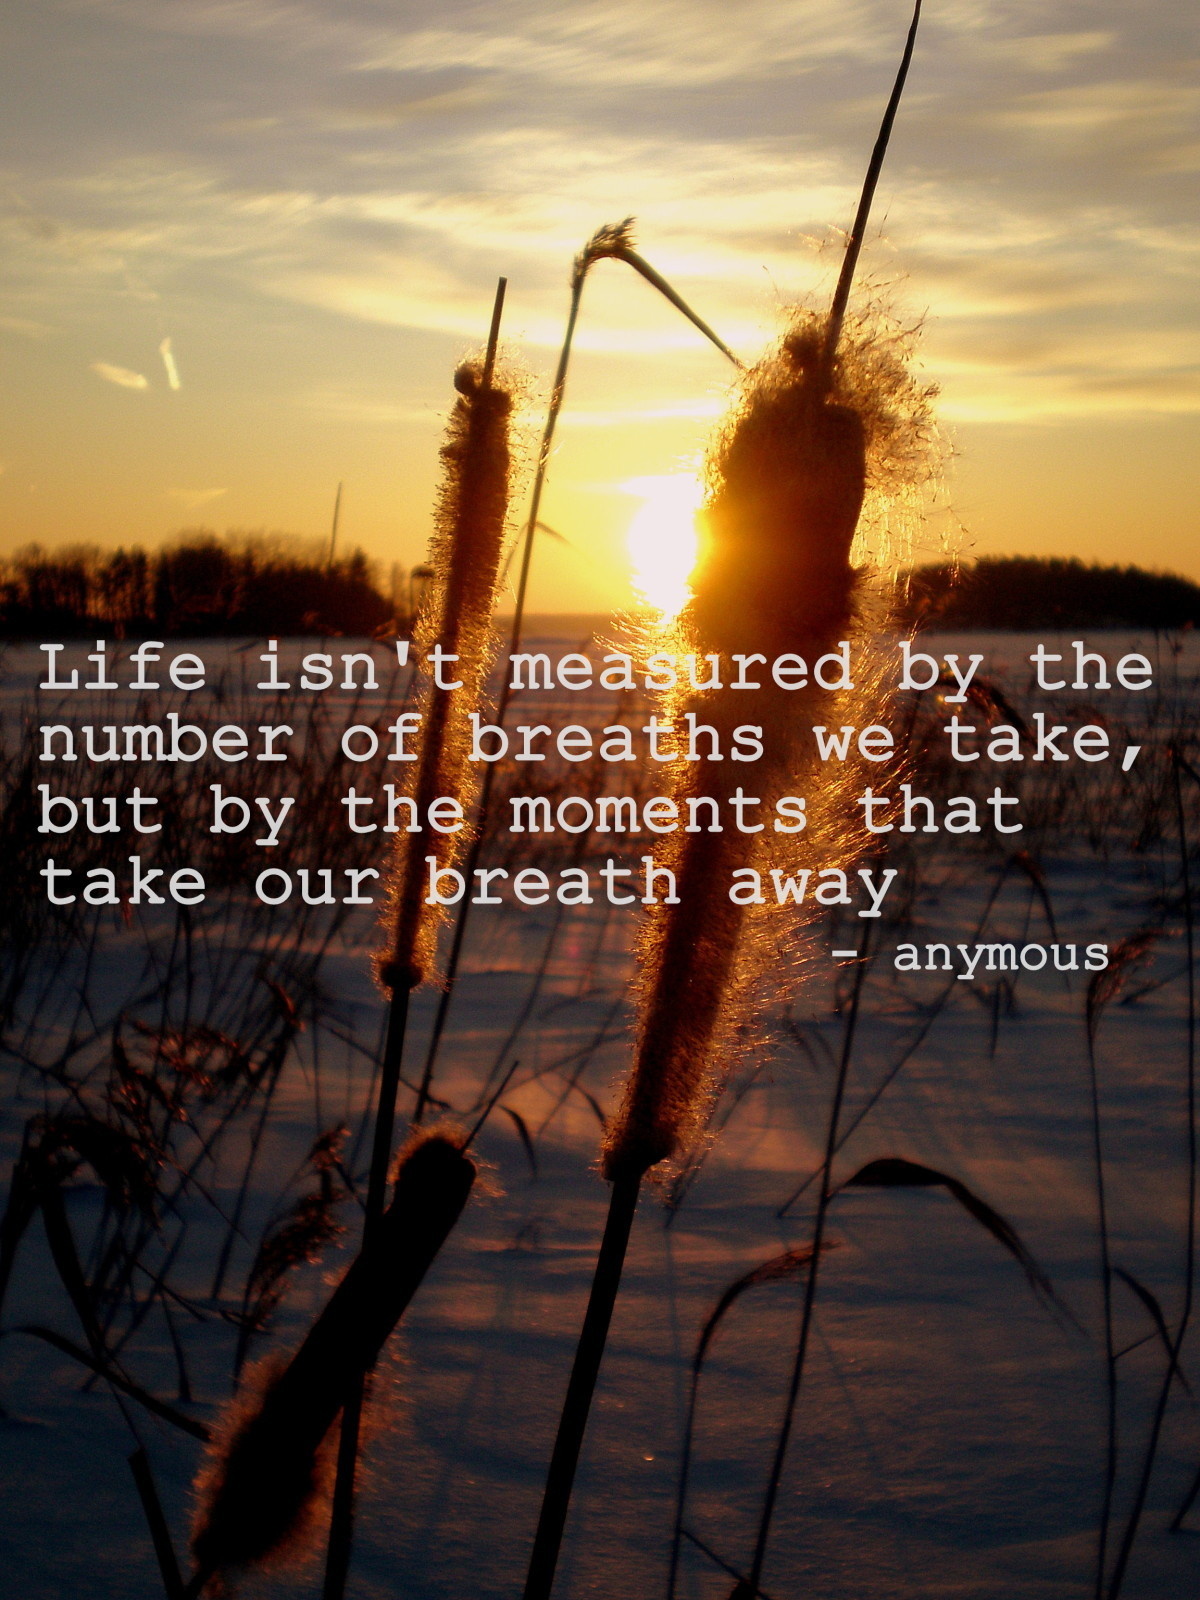 Life Isn't Meatured By The Number Of Breaths We Take, But By The Moments That Take Our Breath Away